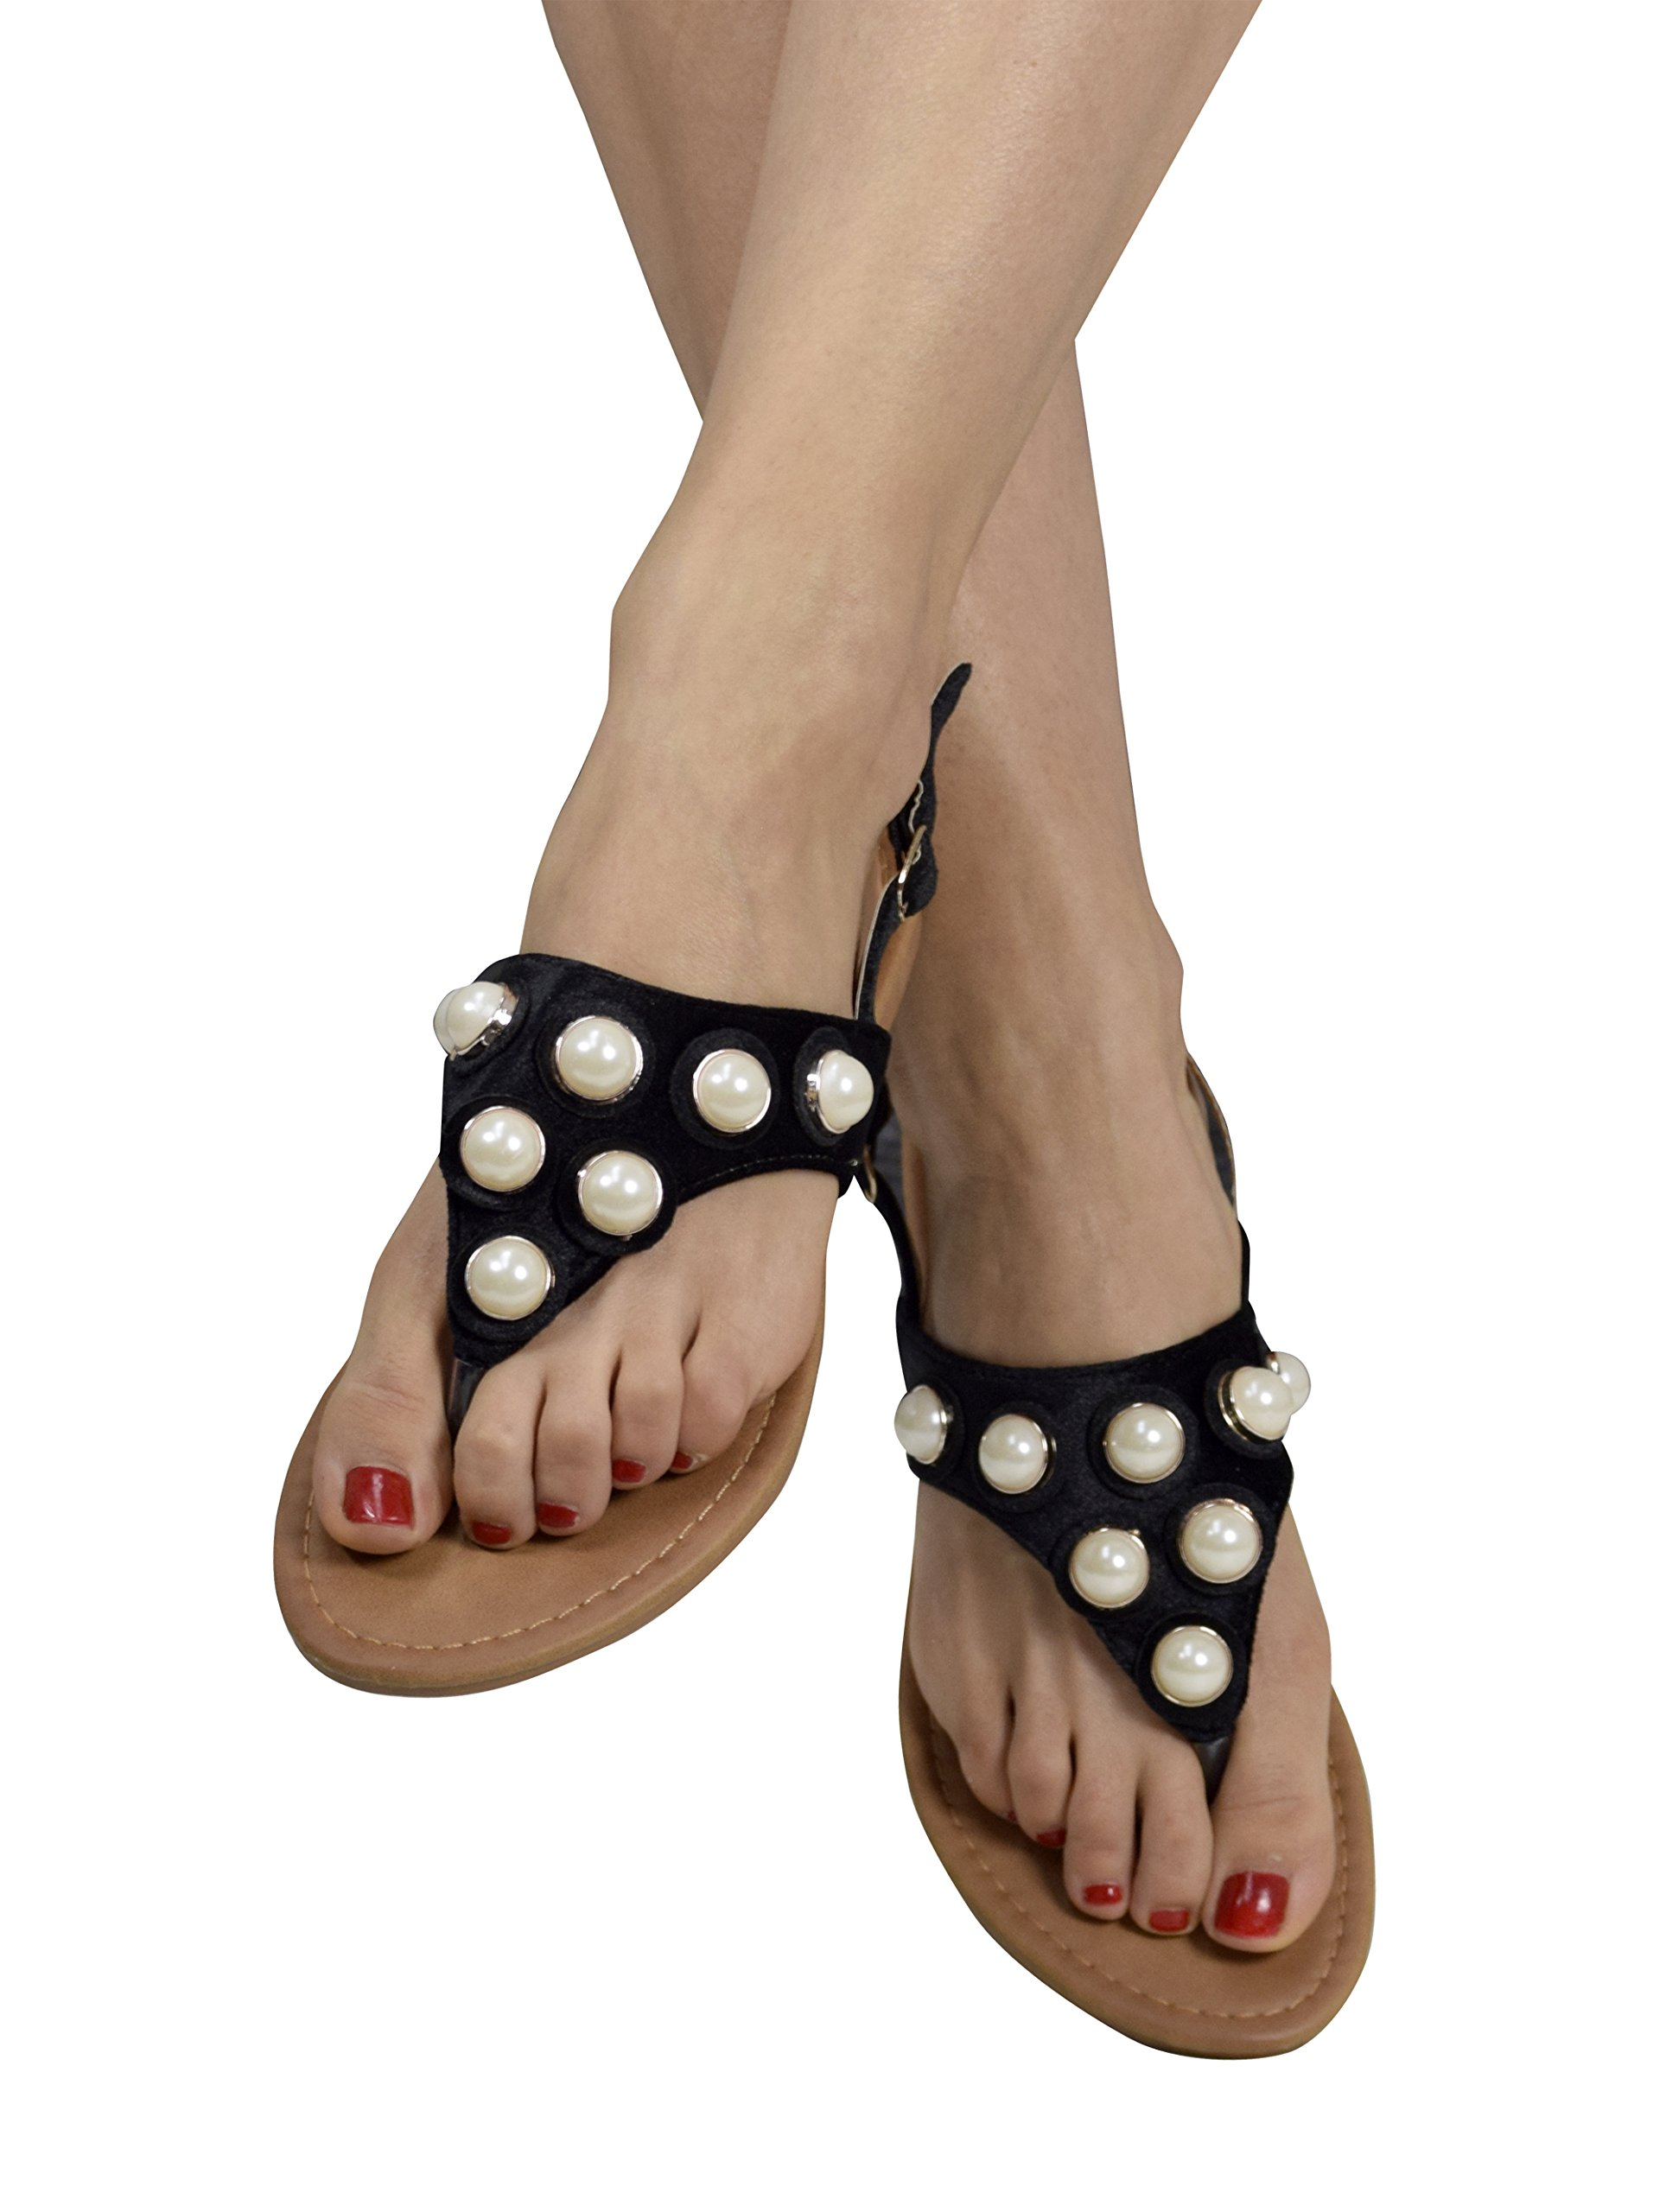 Peach Couture Womens Pearl Studded Back Strap Sandals Flip Flops Black 8 B(M) US